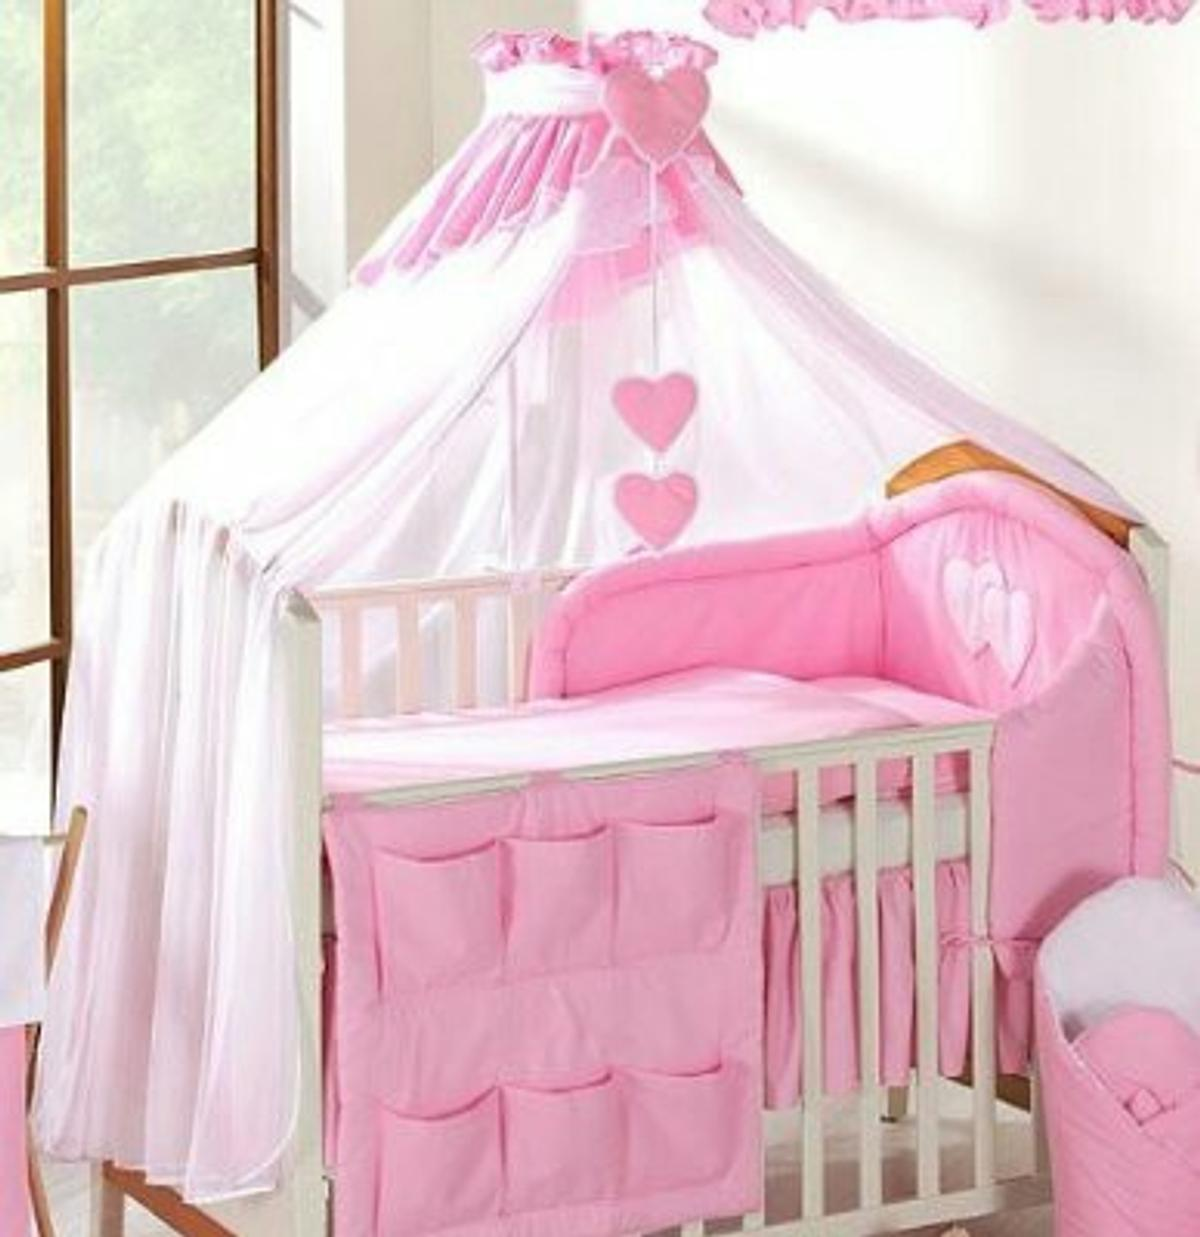 - Baby Cot Bed Canopy / Mosquito Net In NW11 London Für 25,00 £ Zum